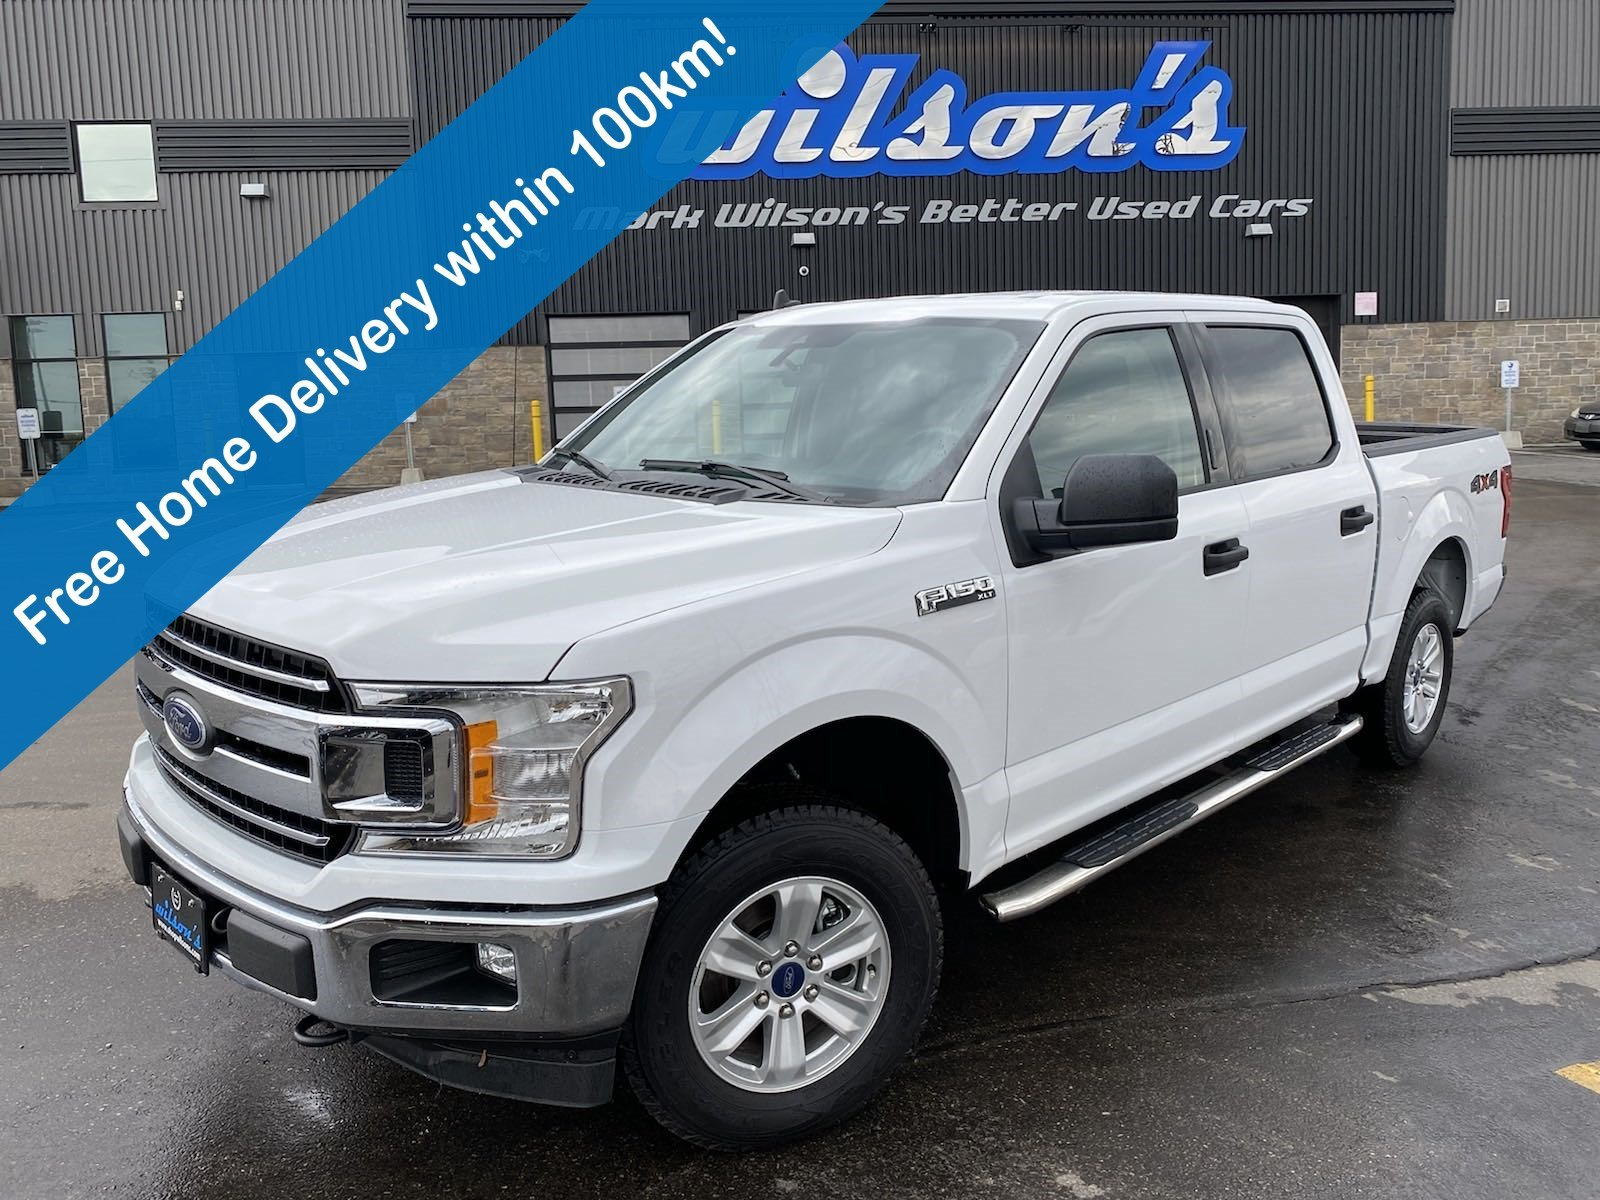 Certified Pre-Owned 2019 Ford F-150 XLT CREW, Tow Package, Sidebars, Power Seat, Pro Trailer Backup Assist and more!